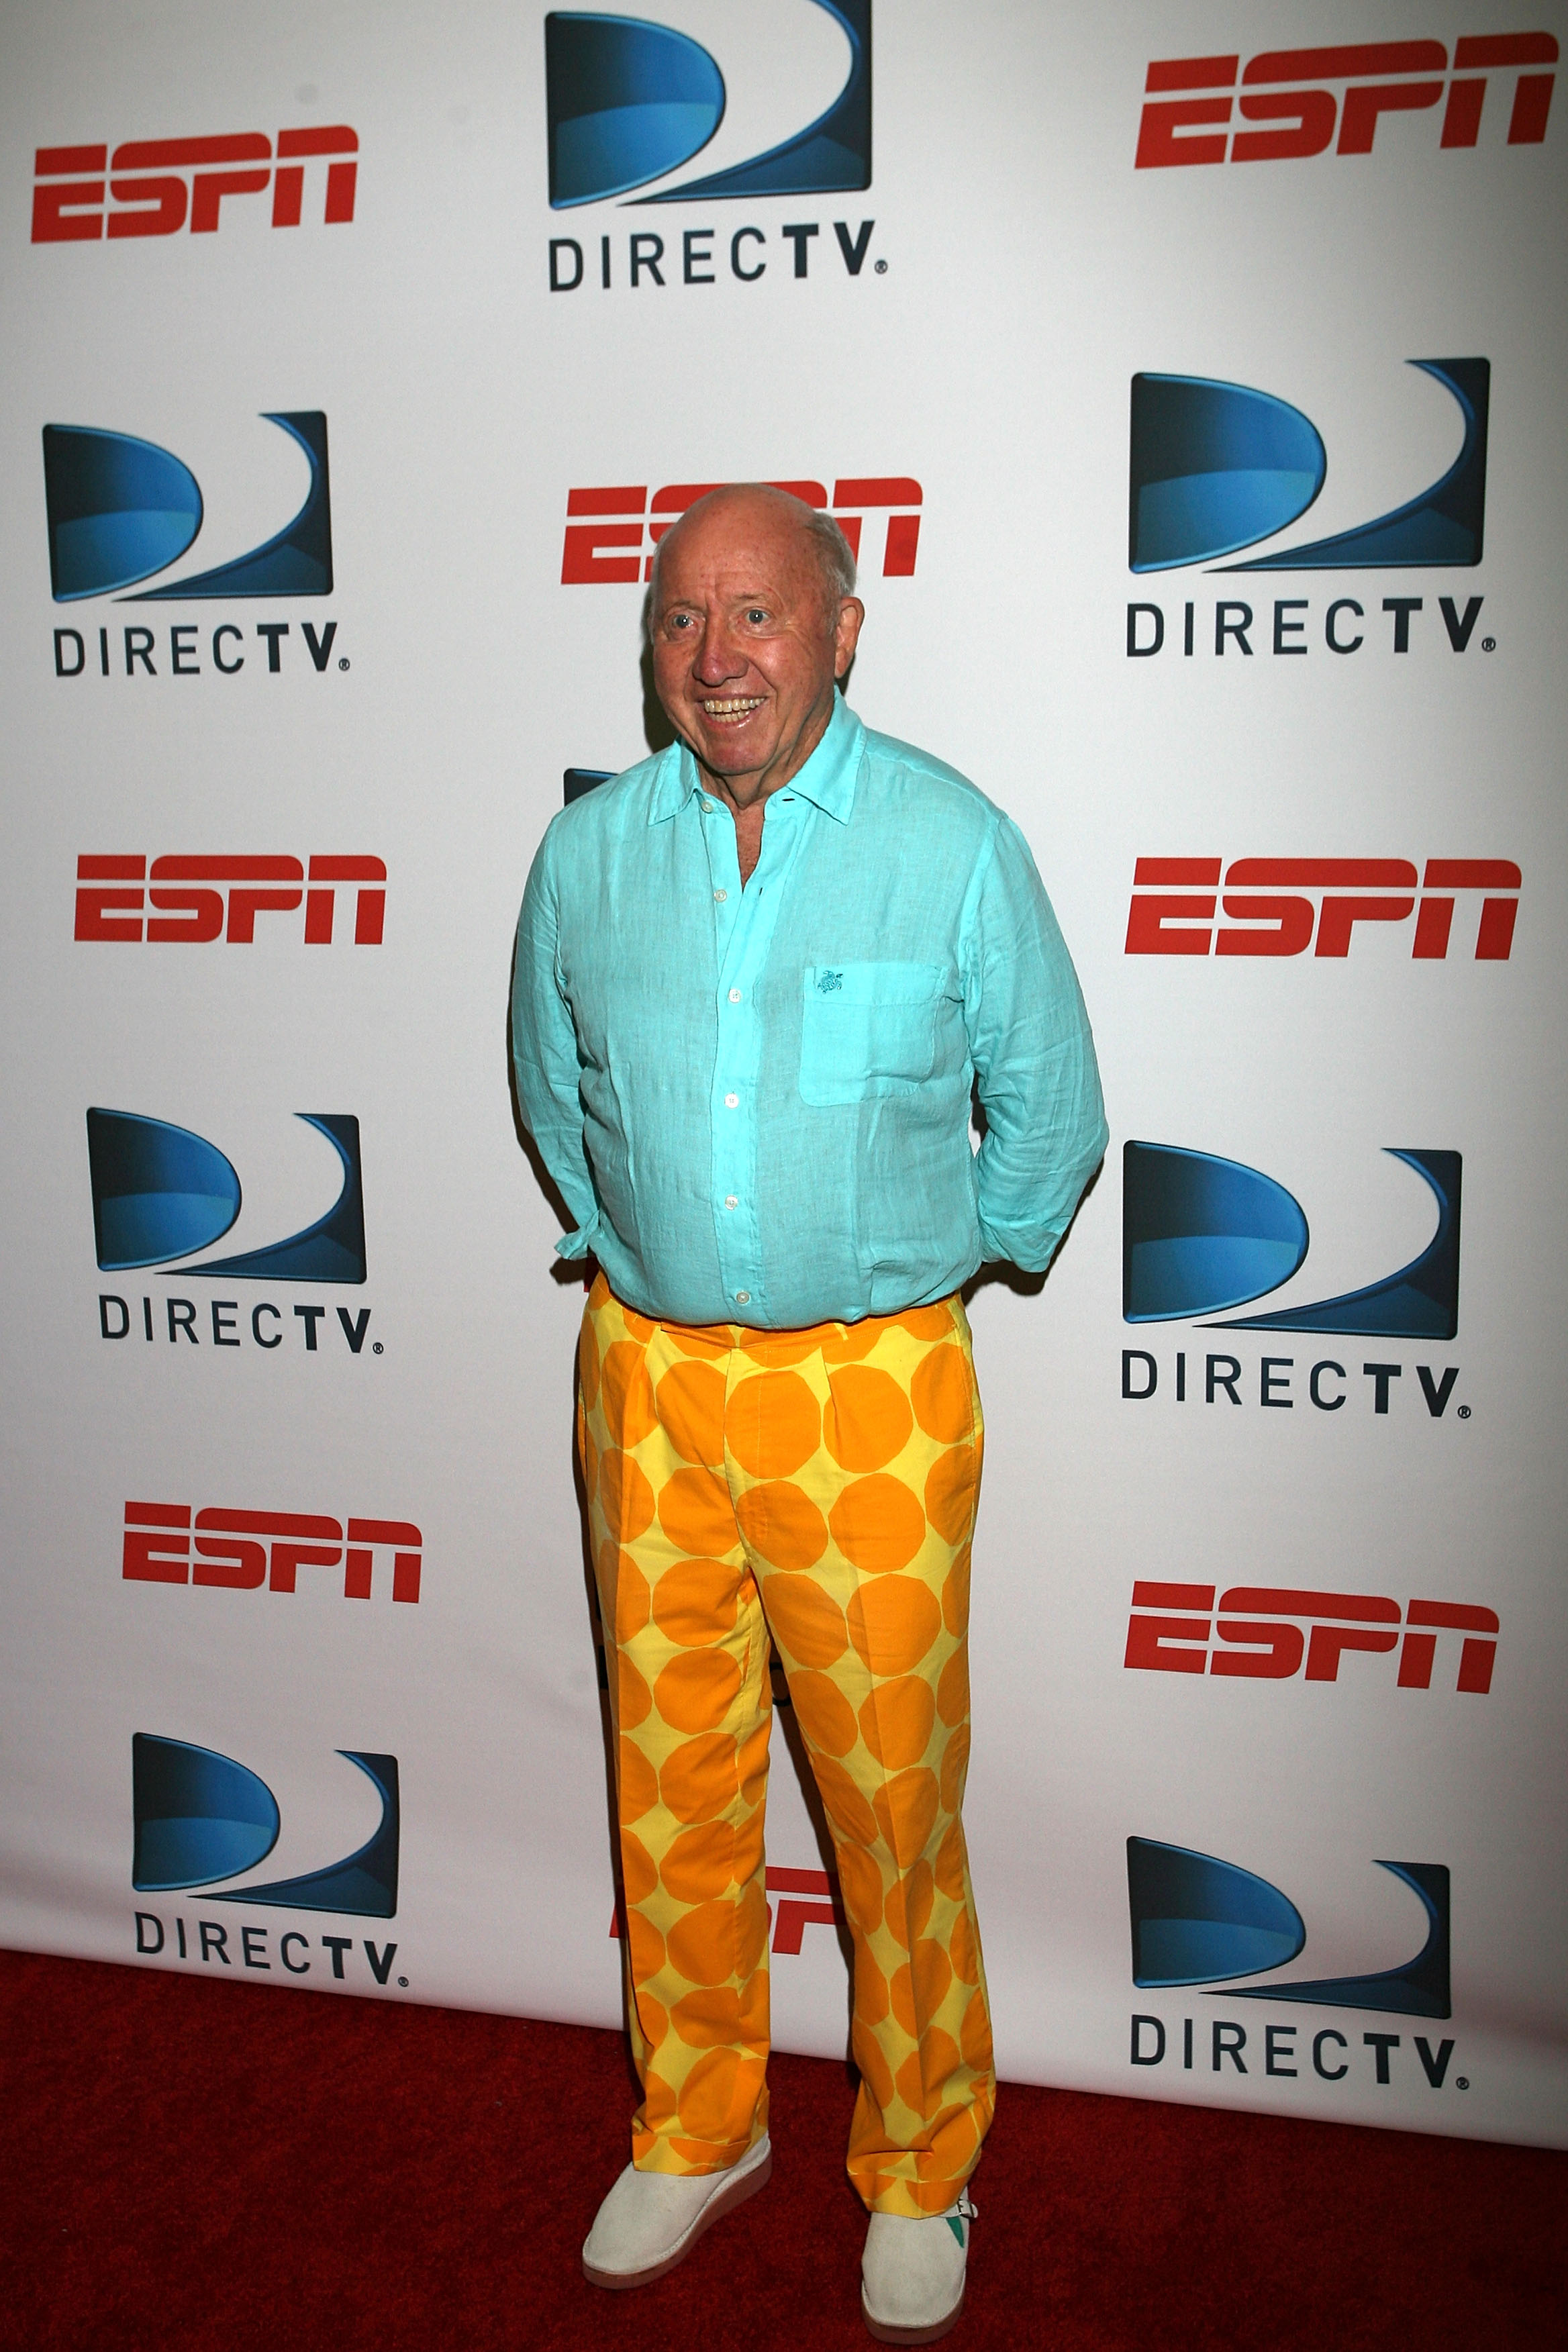 NEW YORK - AUGUST 26: Bud Collins attends the DIRECTV ESPN US Open Experience promoting DIRECTV�s mosaic coverage of the US Open at Bryant Park on August 26, 2009 in New York, New York.  (Photo by Chris Trotman/Getty Images for DirecTV)